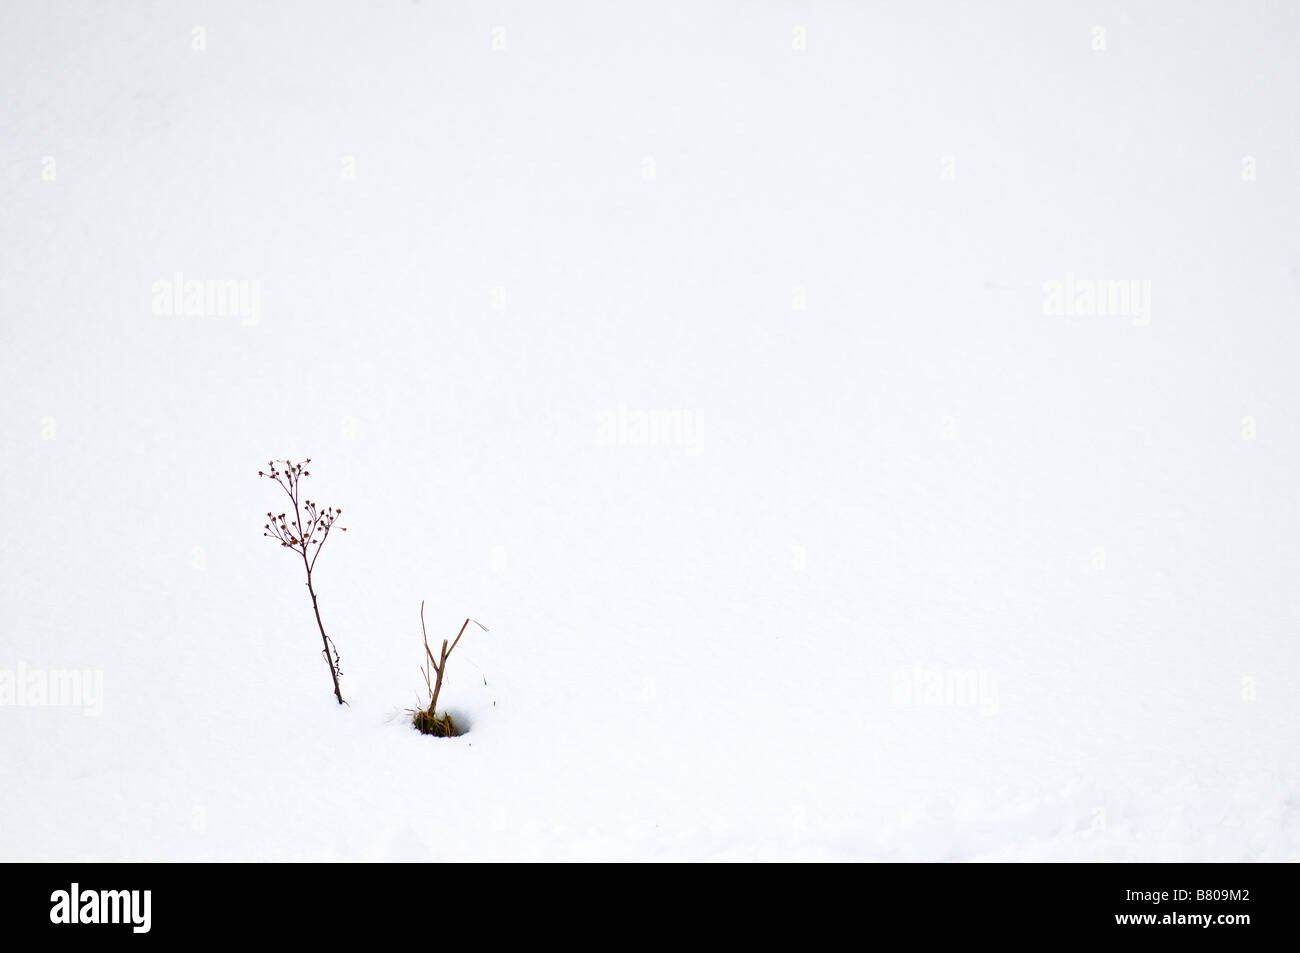 The remains of a dead plant standing in snow. - Stock Image